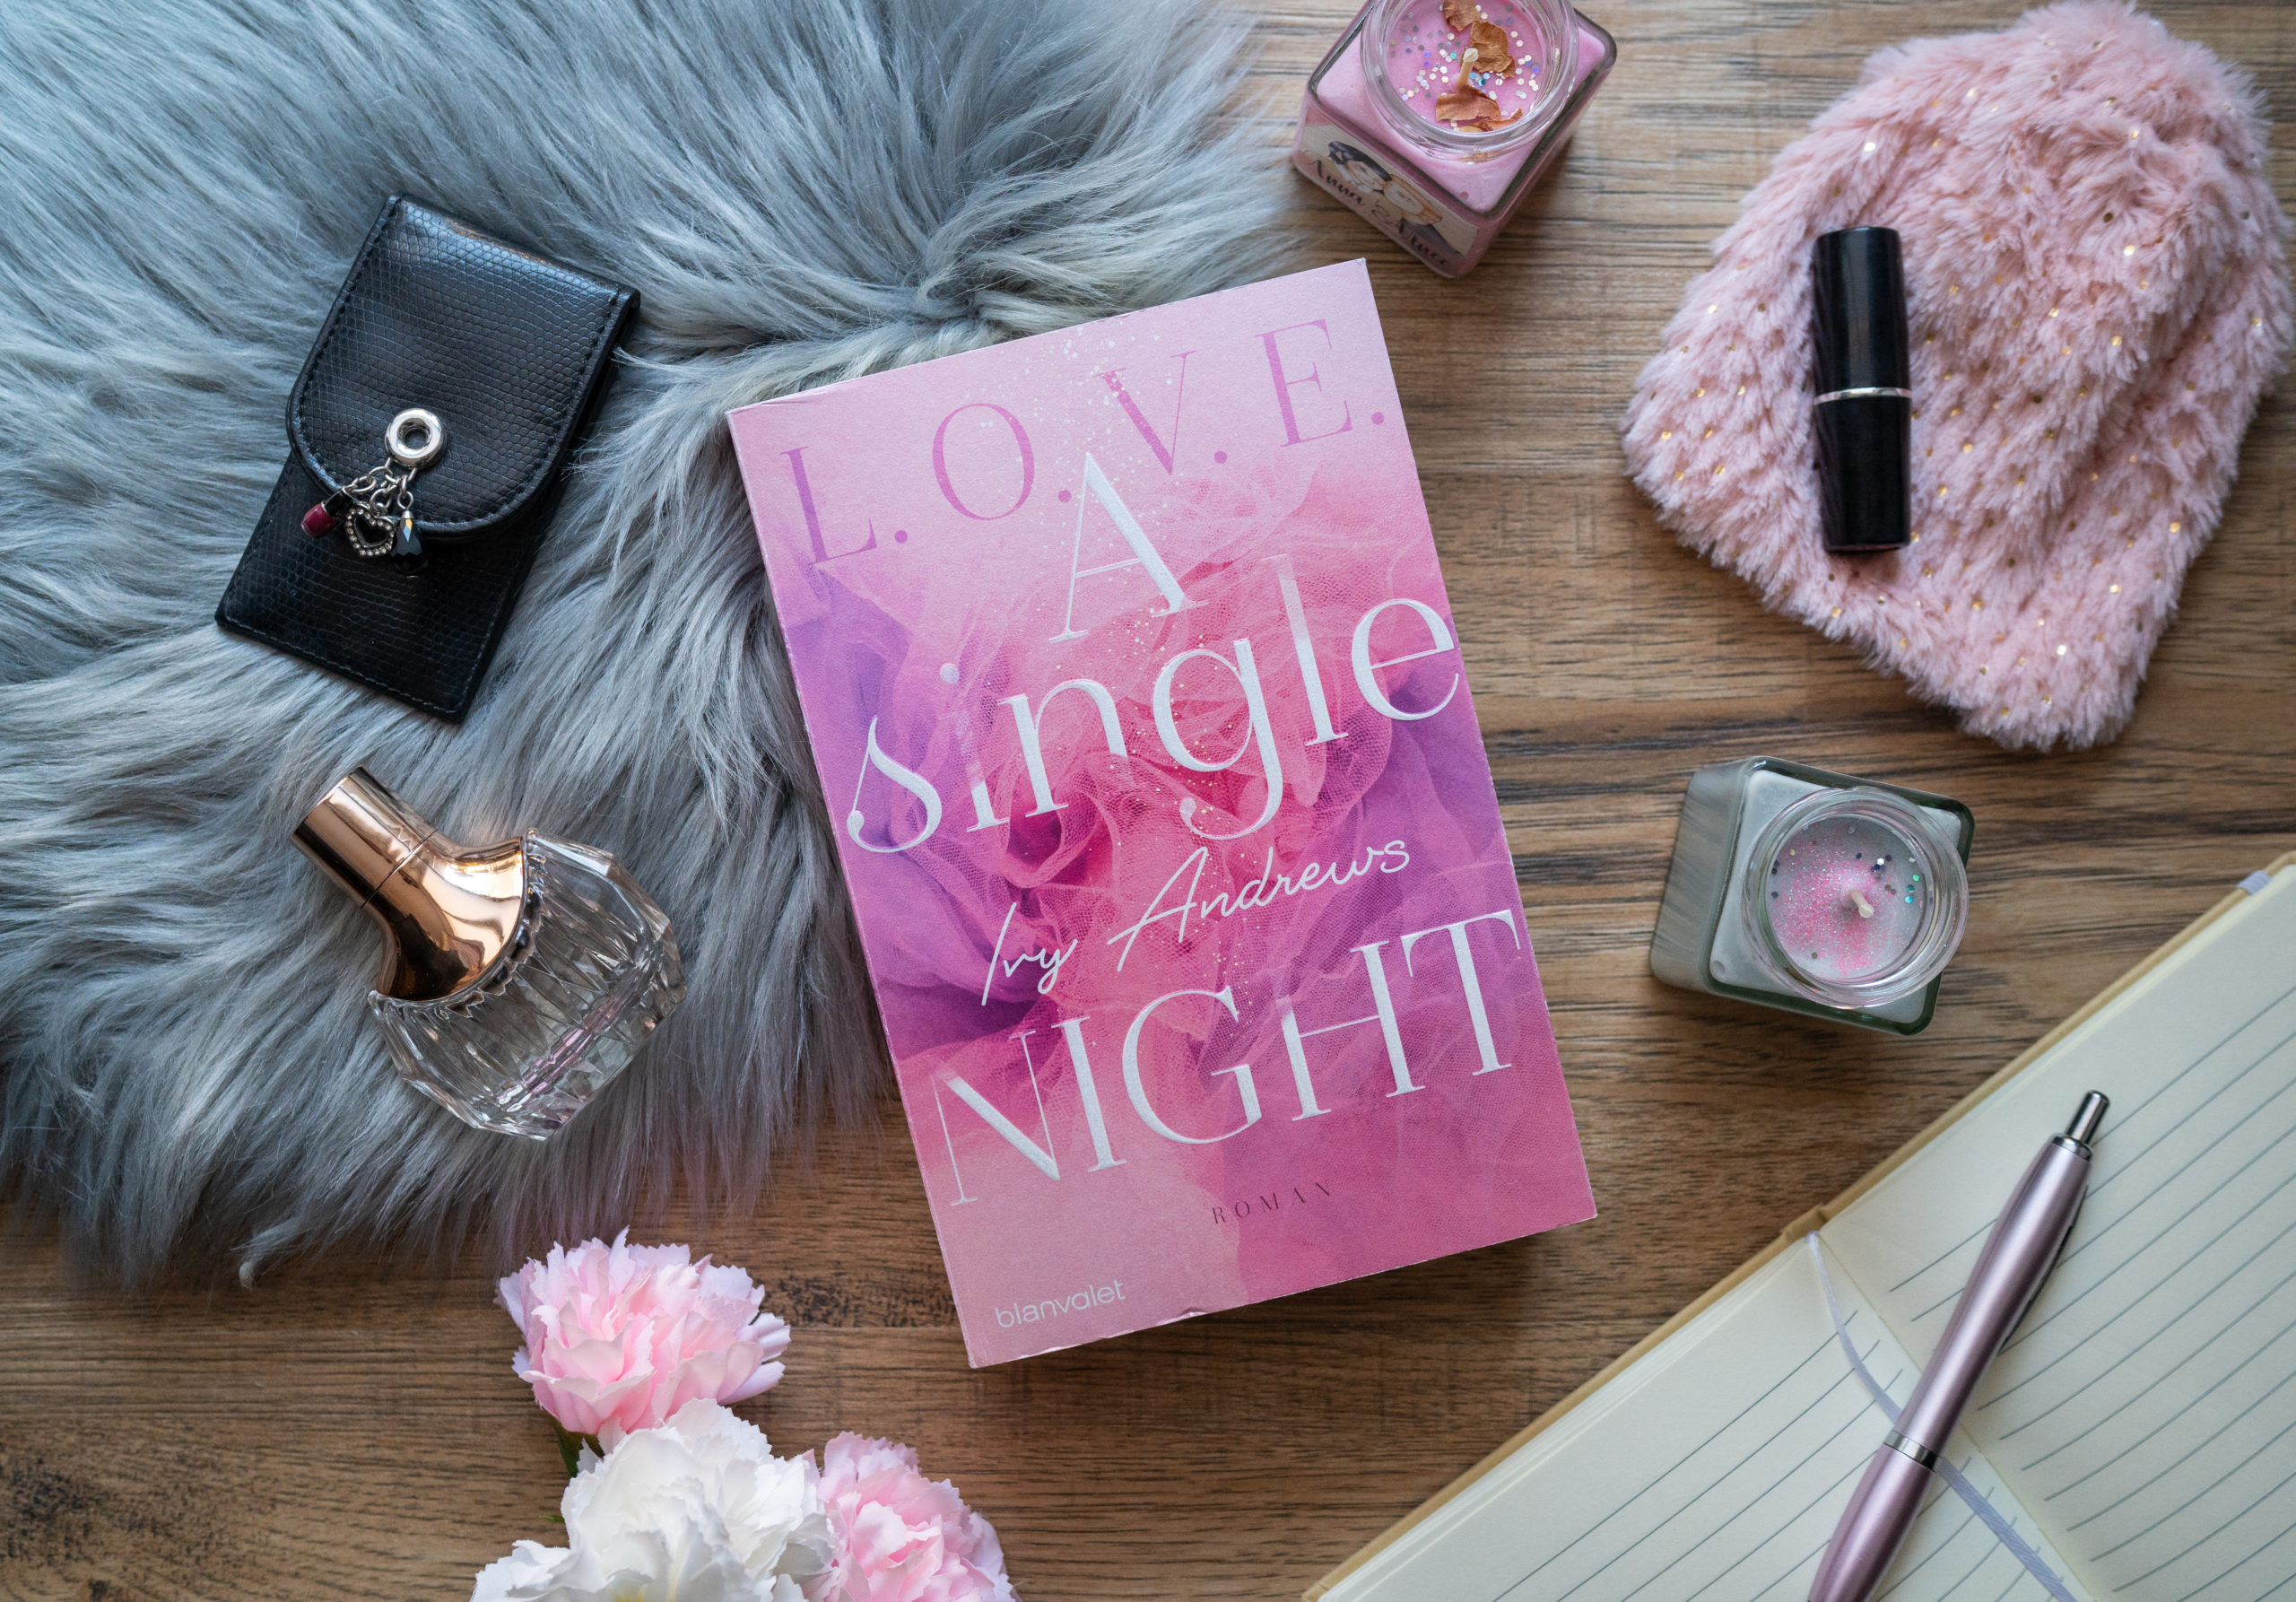 L.O.V.E.: A Single Night – Ivy Andrews